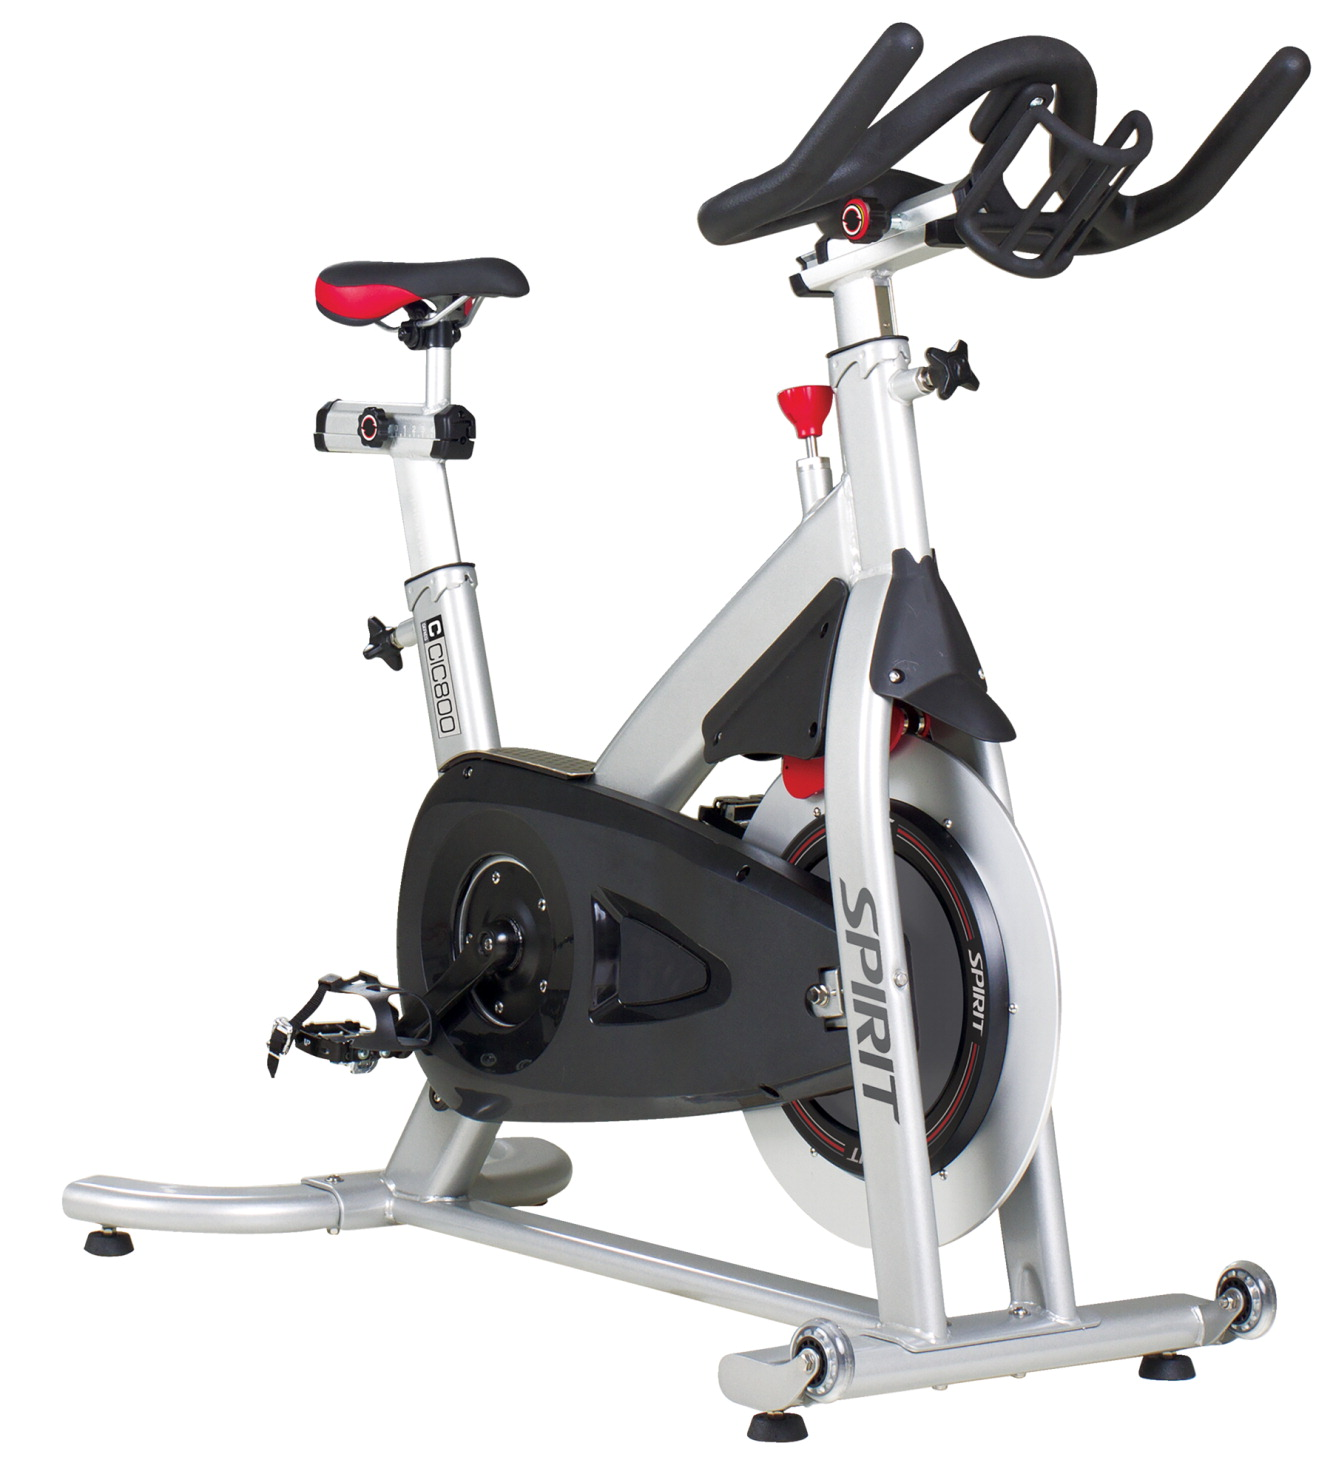 Spirit CIC800 Indoor Cycle Trainer, 42 x 21 x 41 Inches